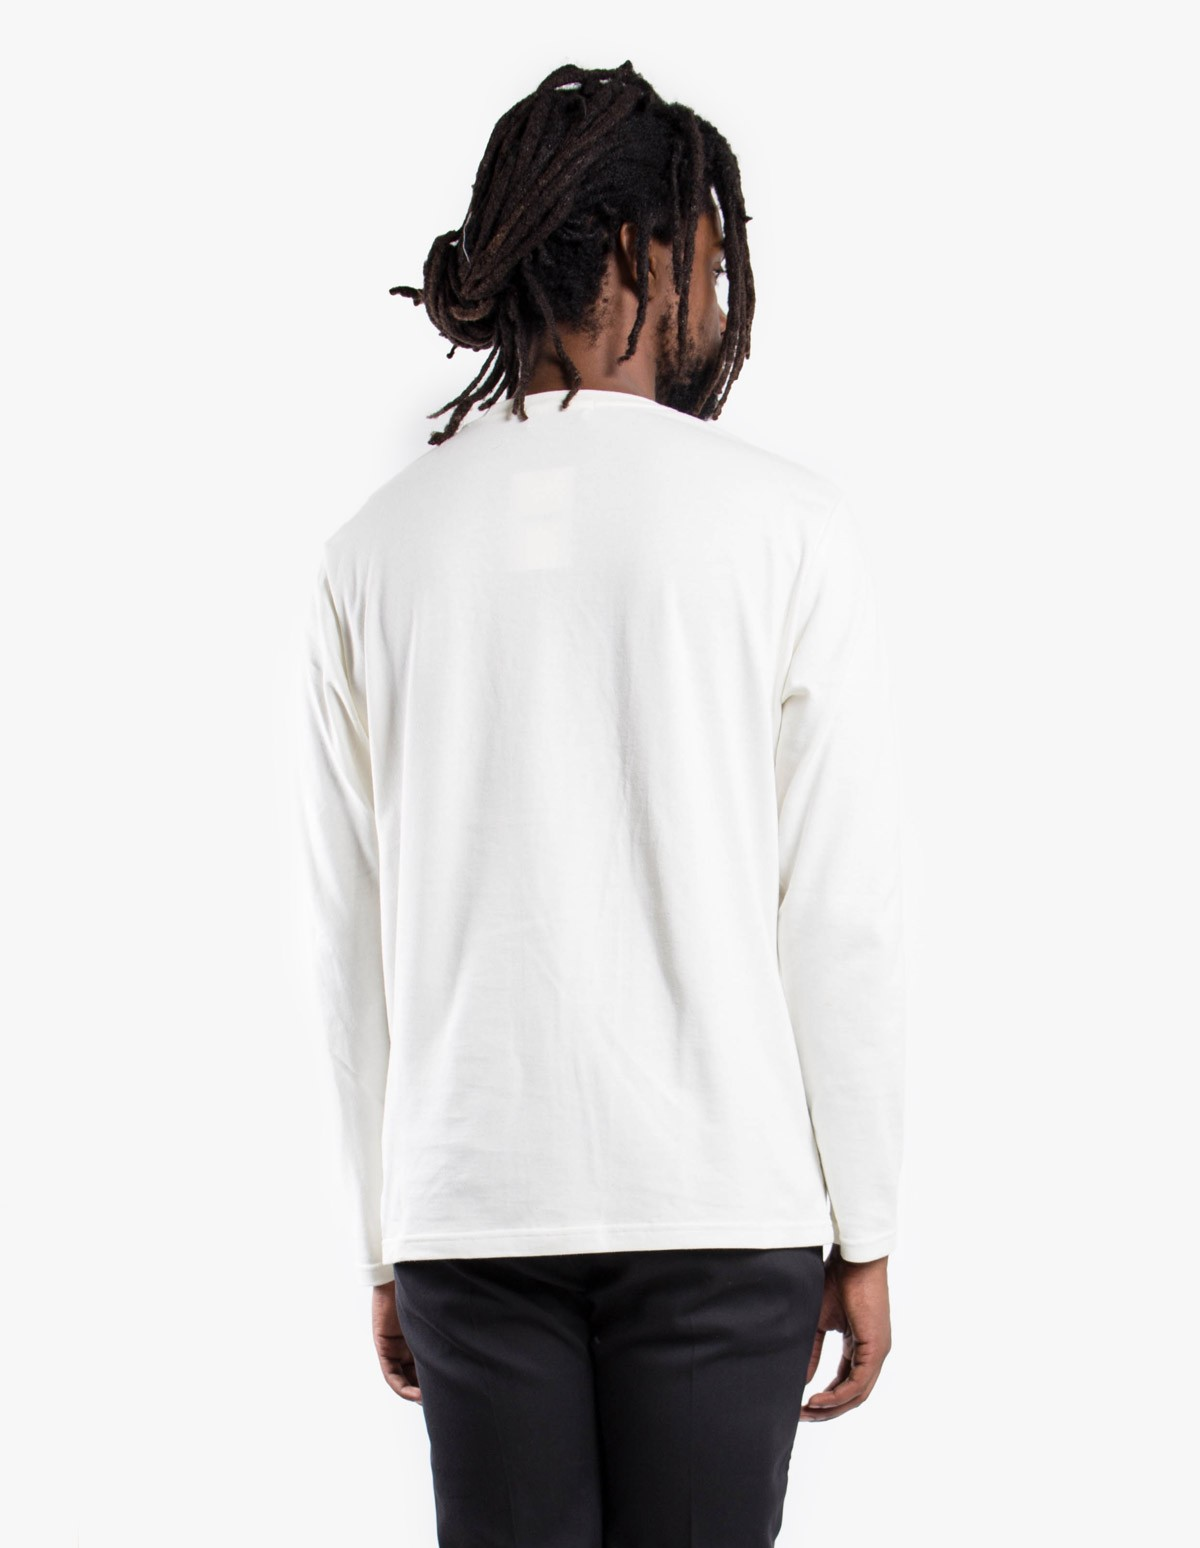 Séfr Clin Long Sleeved Tee in Off White